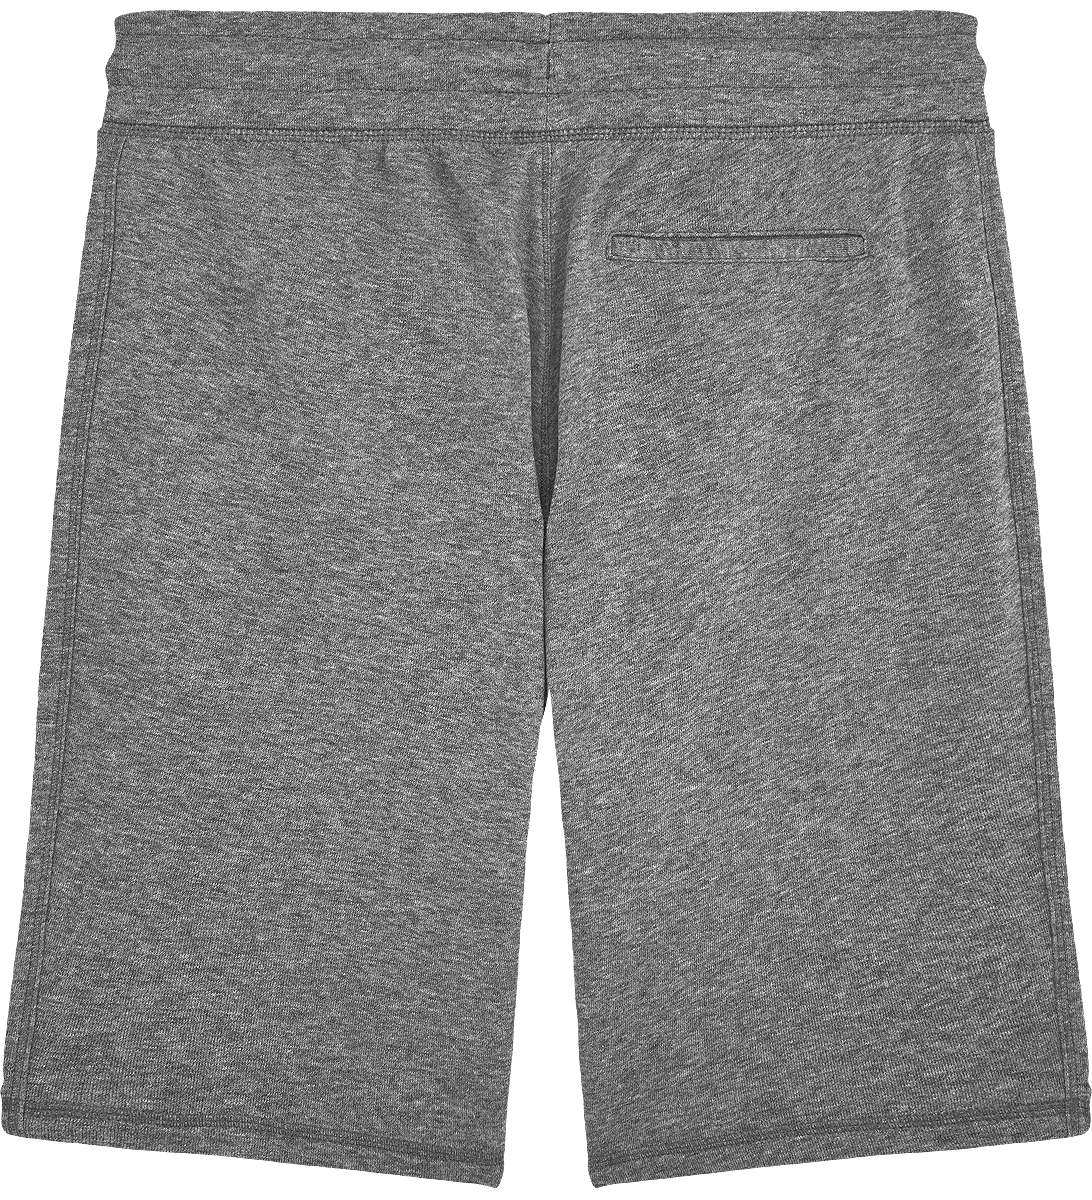 Mens Official Don Jogging Shorts - Homme>Vêtements De Sport